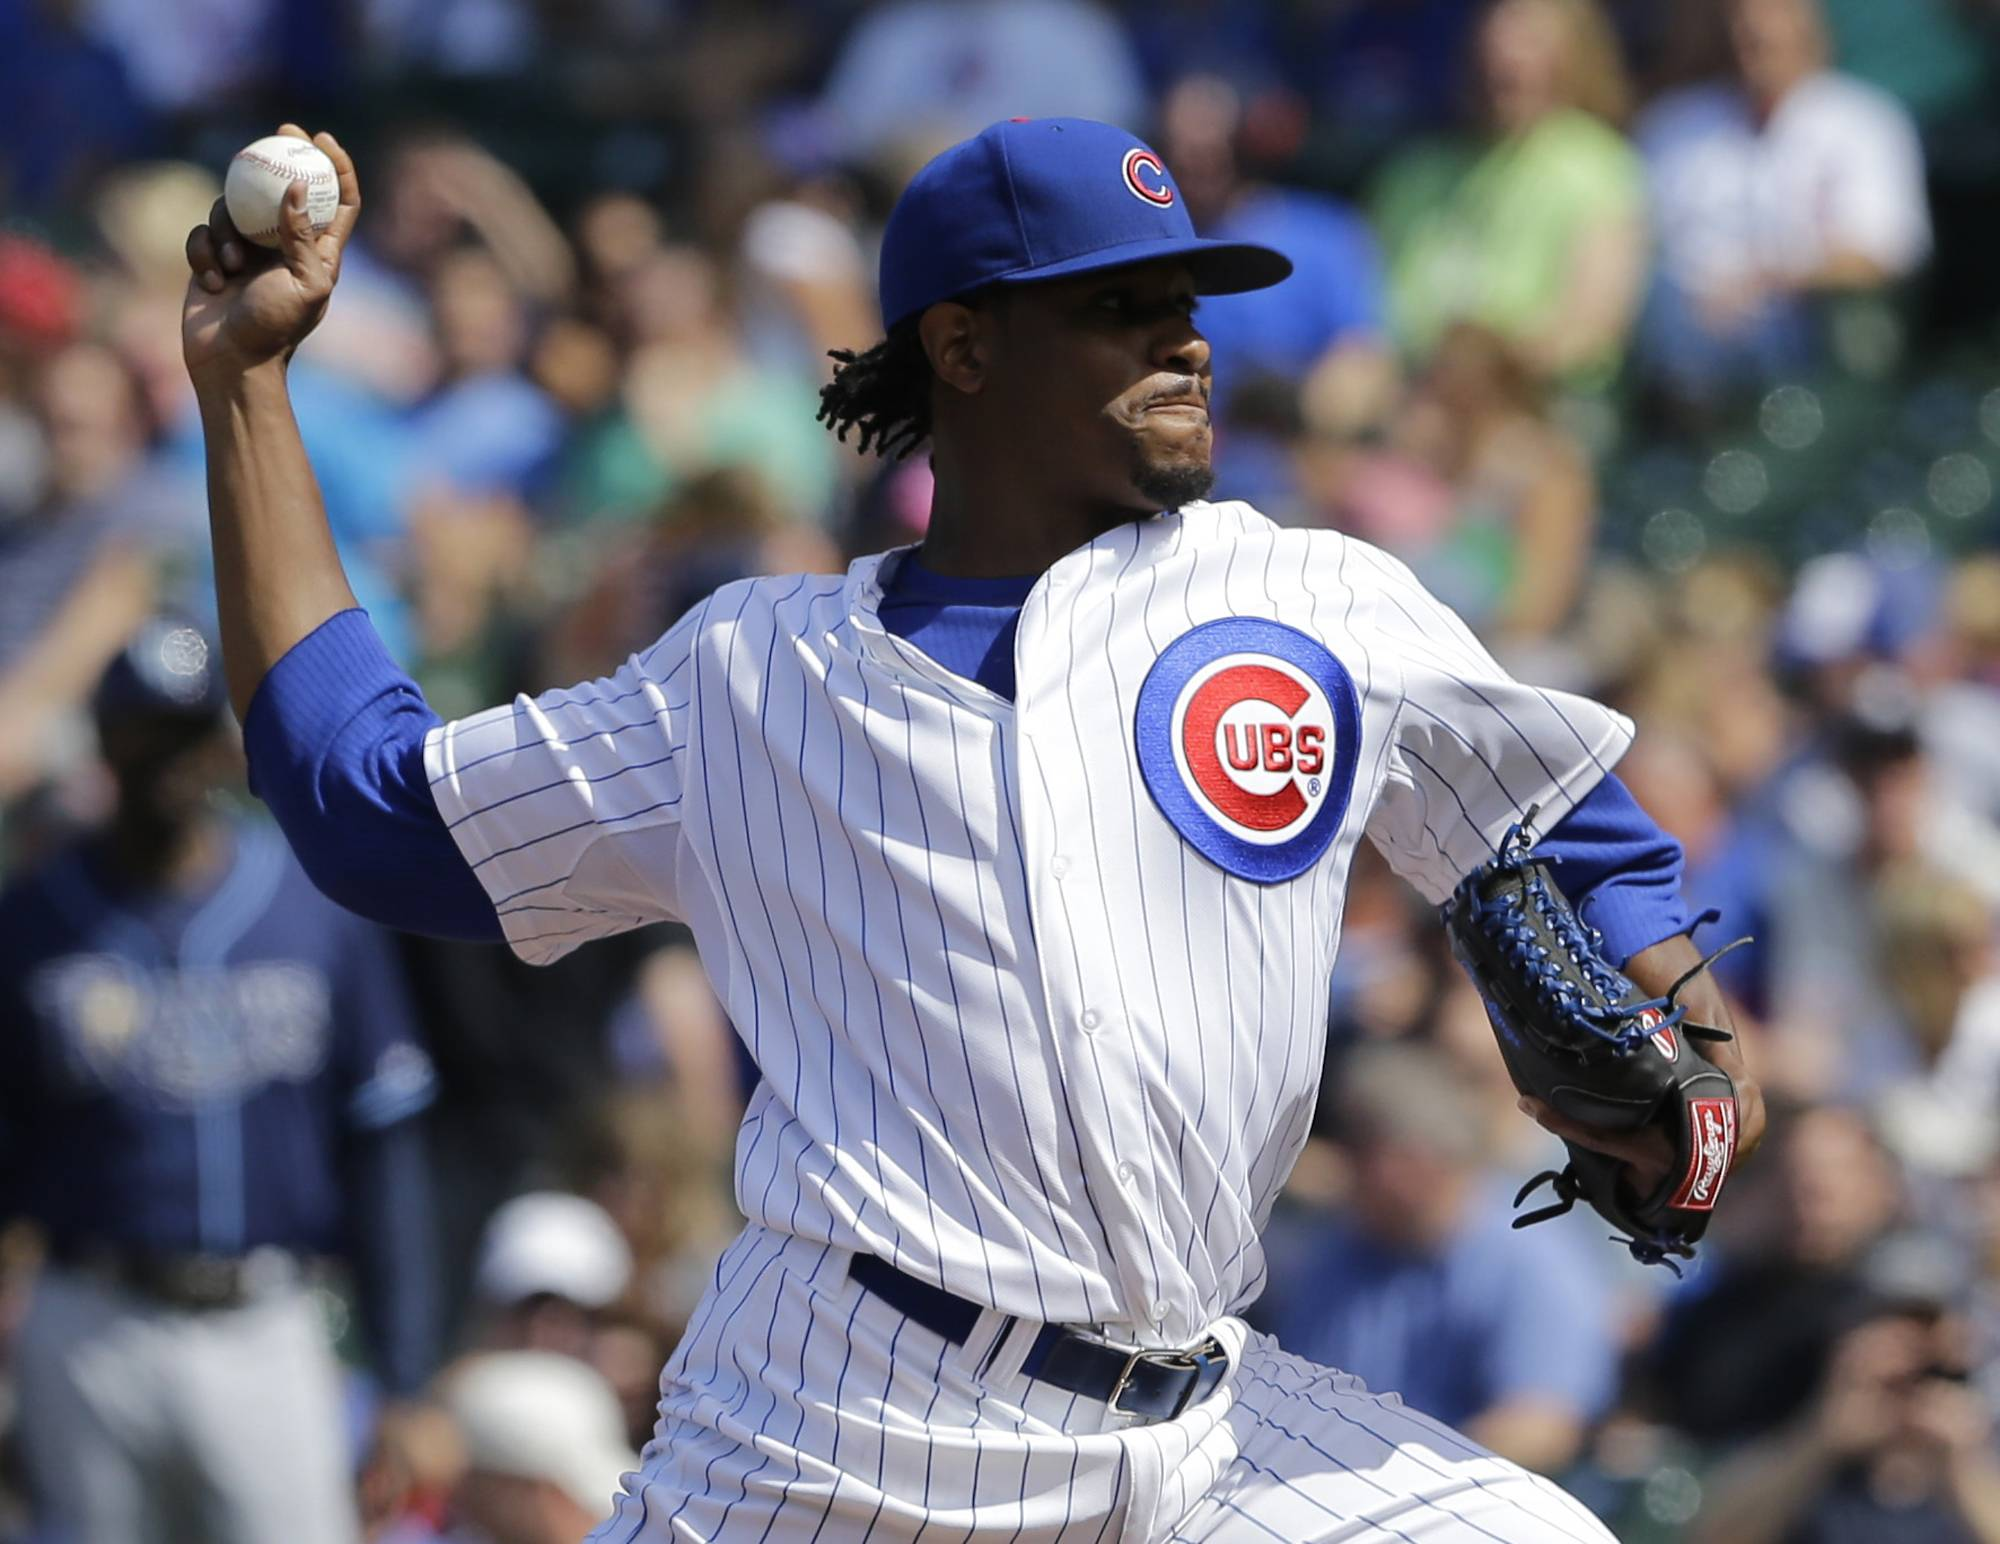 Cubs starter Edwin Jackson throws against the Tampa Bay Rays during Saturday's game at Wrigley Field. The Cubs lost 4-0. Jackson allowed four runs — three earned — and five hits in six innings. He is 1-5 in his past nine starts.